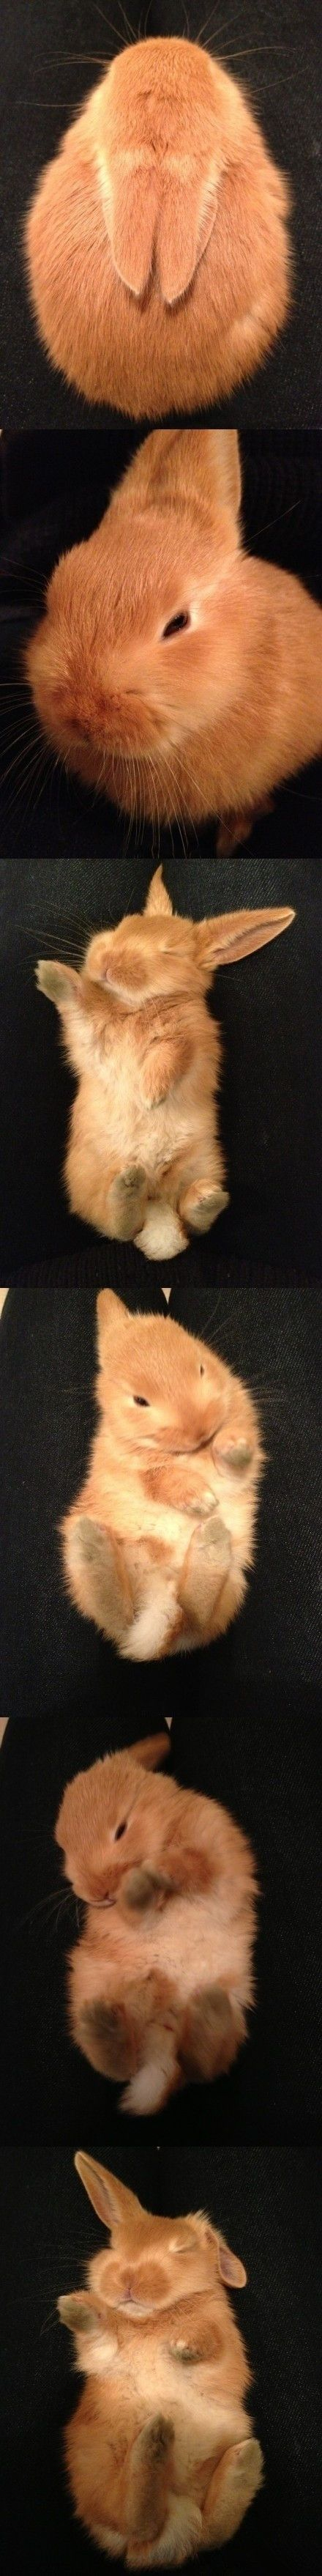 Cute little bunny, you have to love.